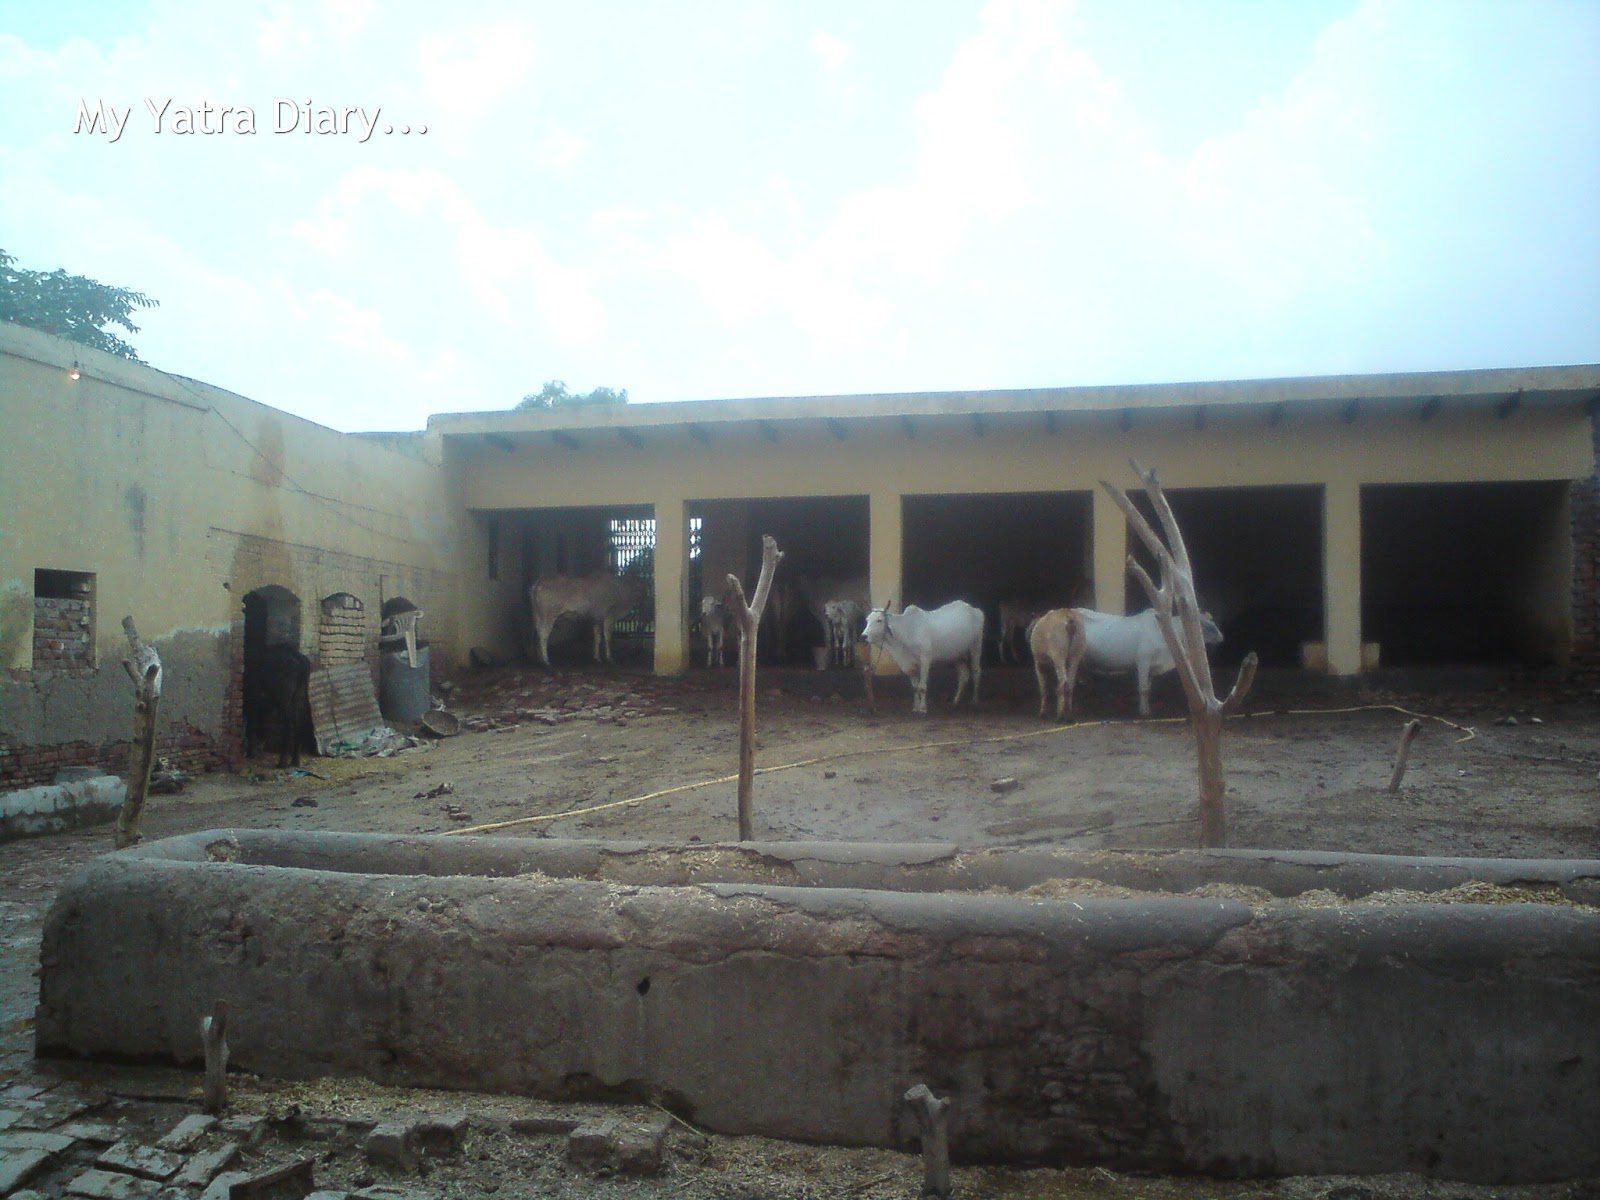 Cattle shed designs of india